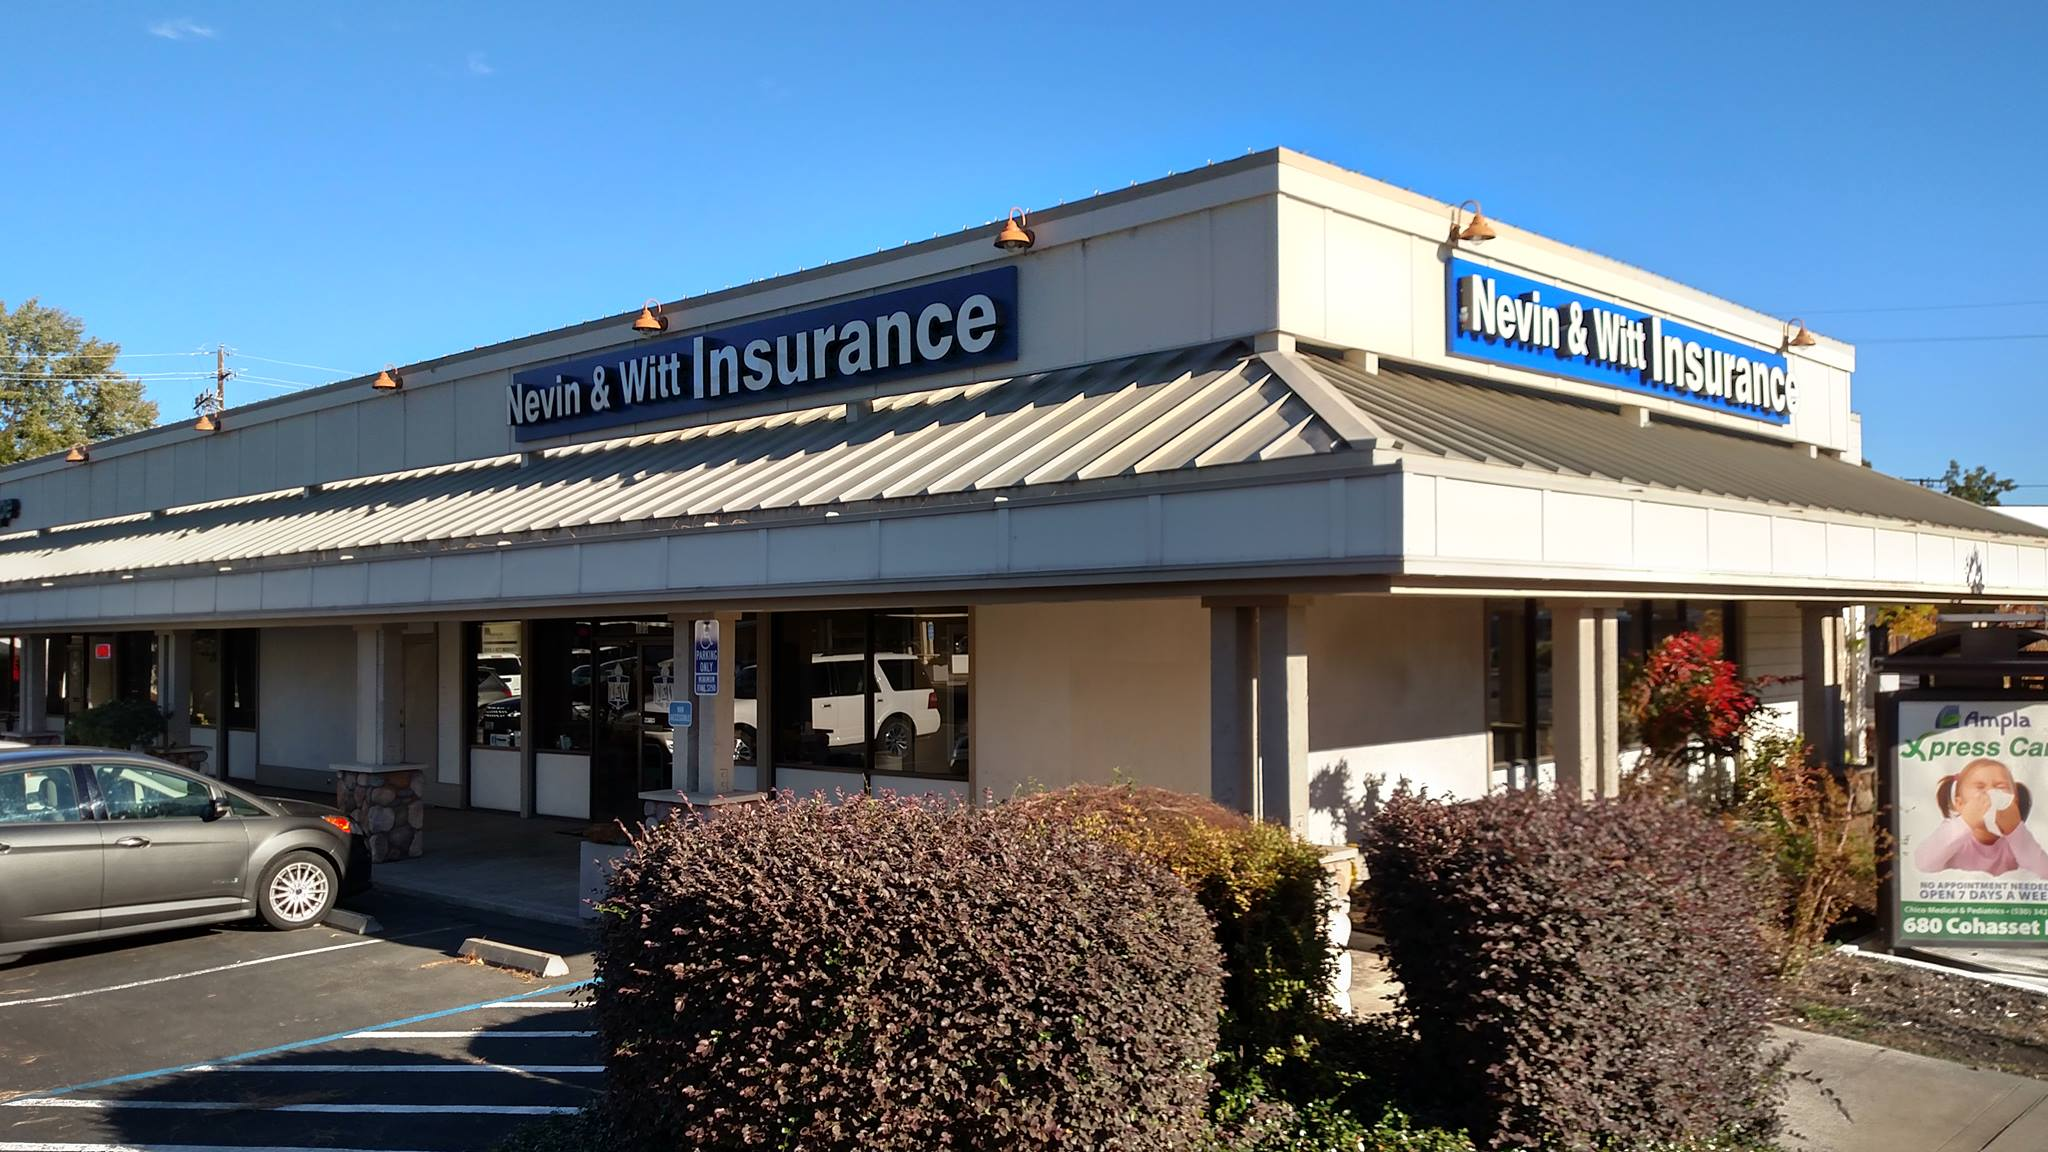 please come visit us for all your home auto life health and commercial insurance needs